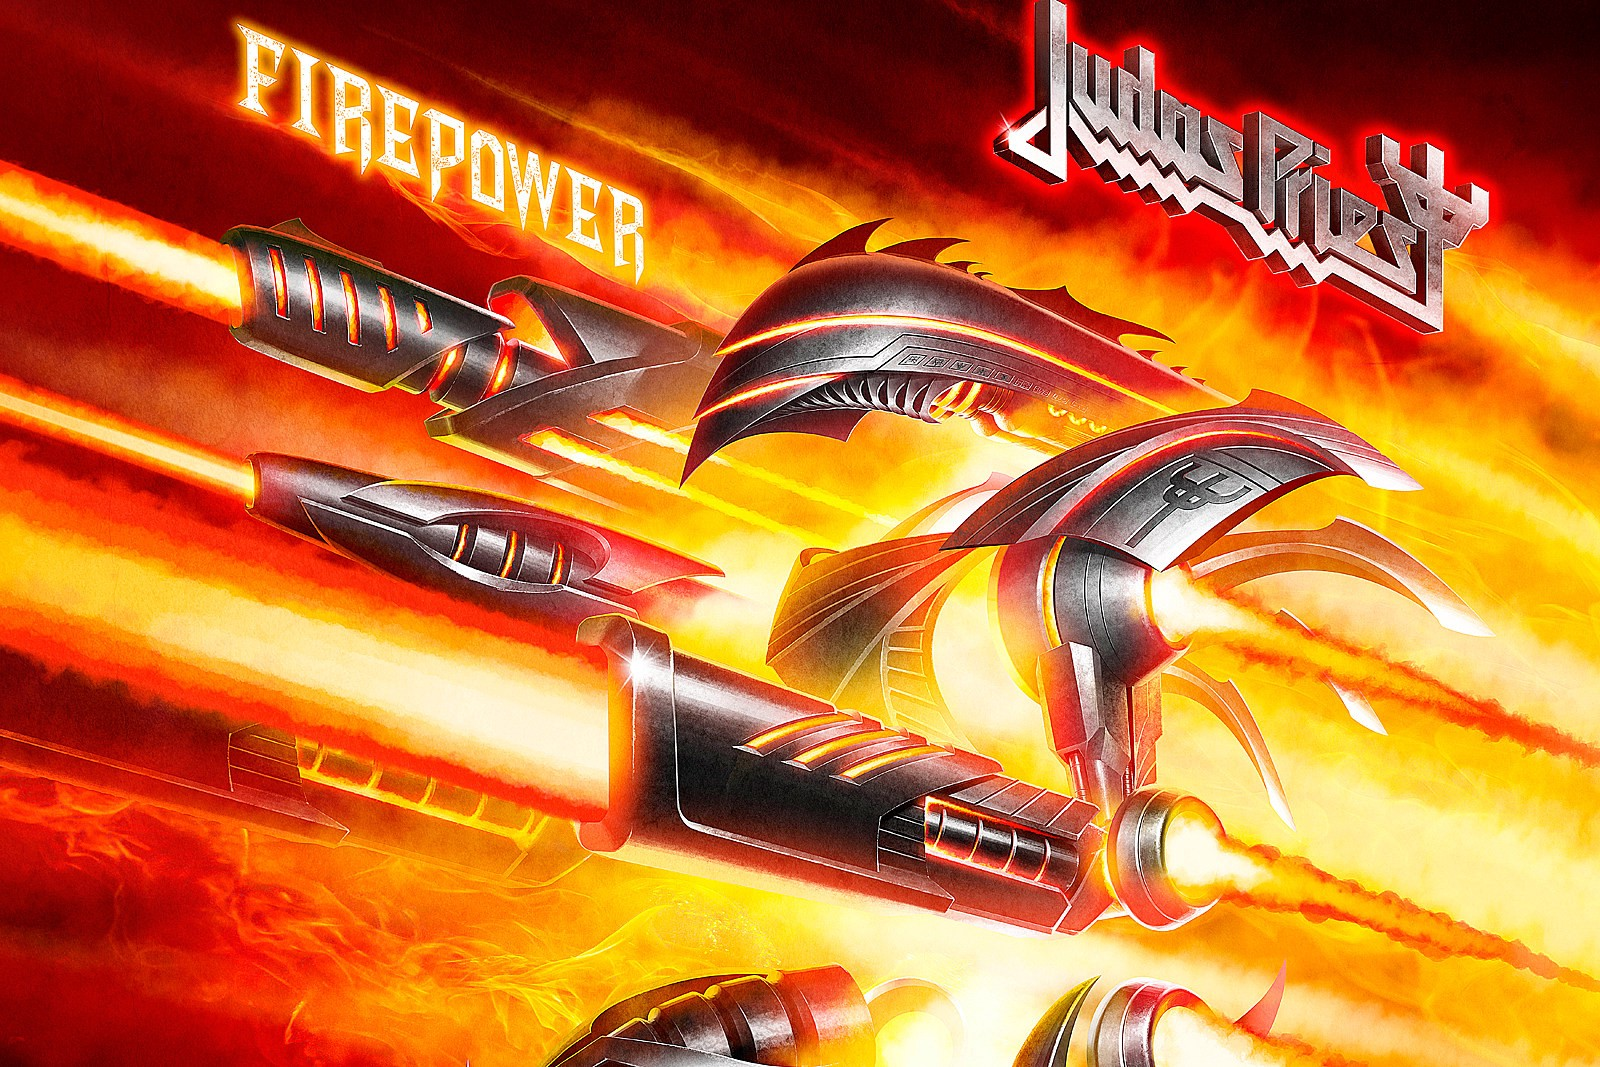 c2fc0892f33 Judas Priest — Firepower (Album Review) – Alper Memioglu – Medium